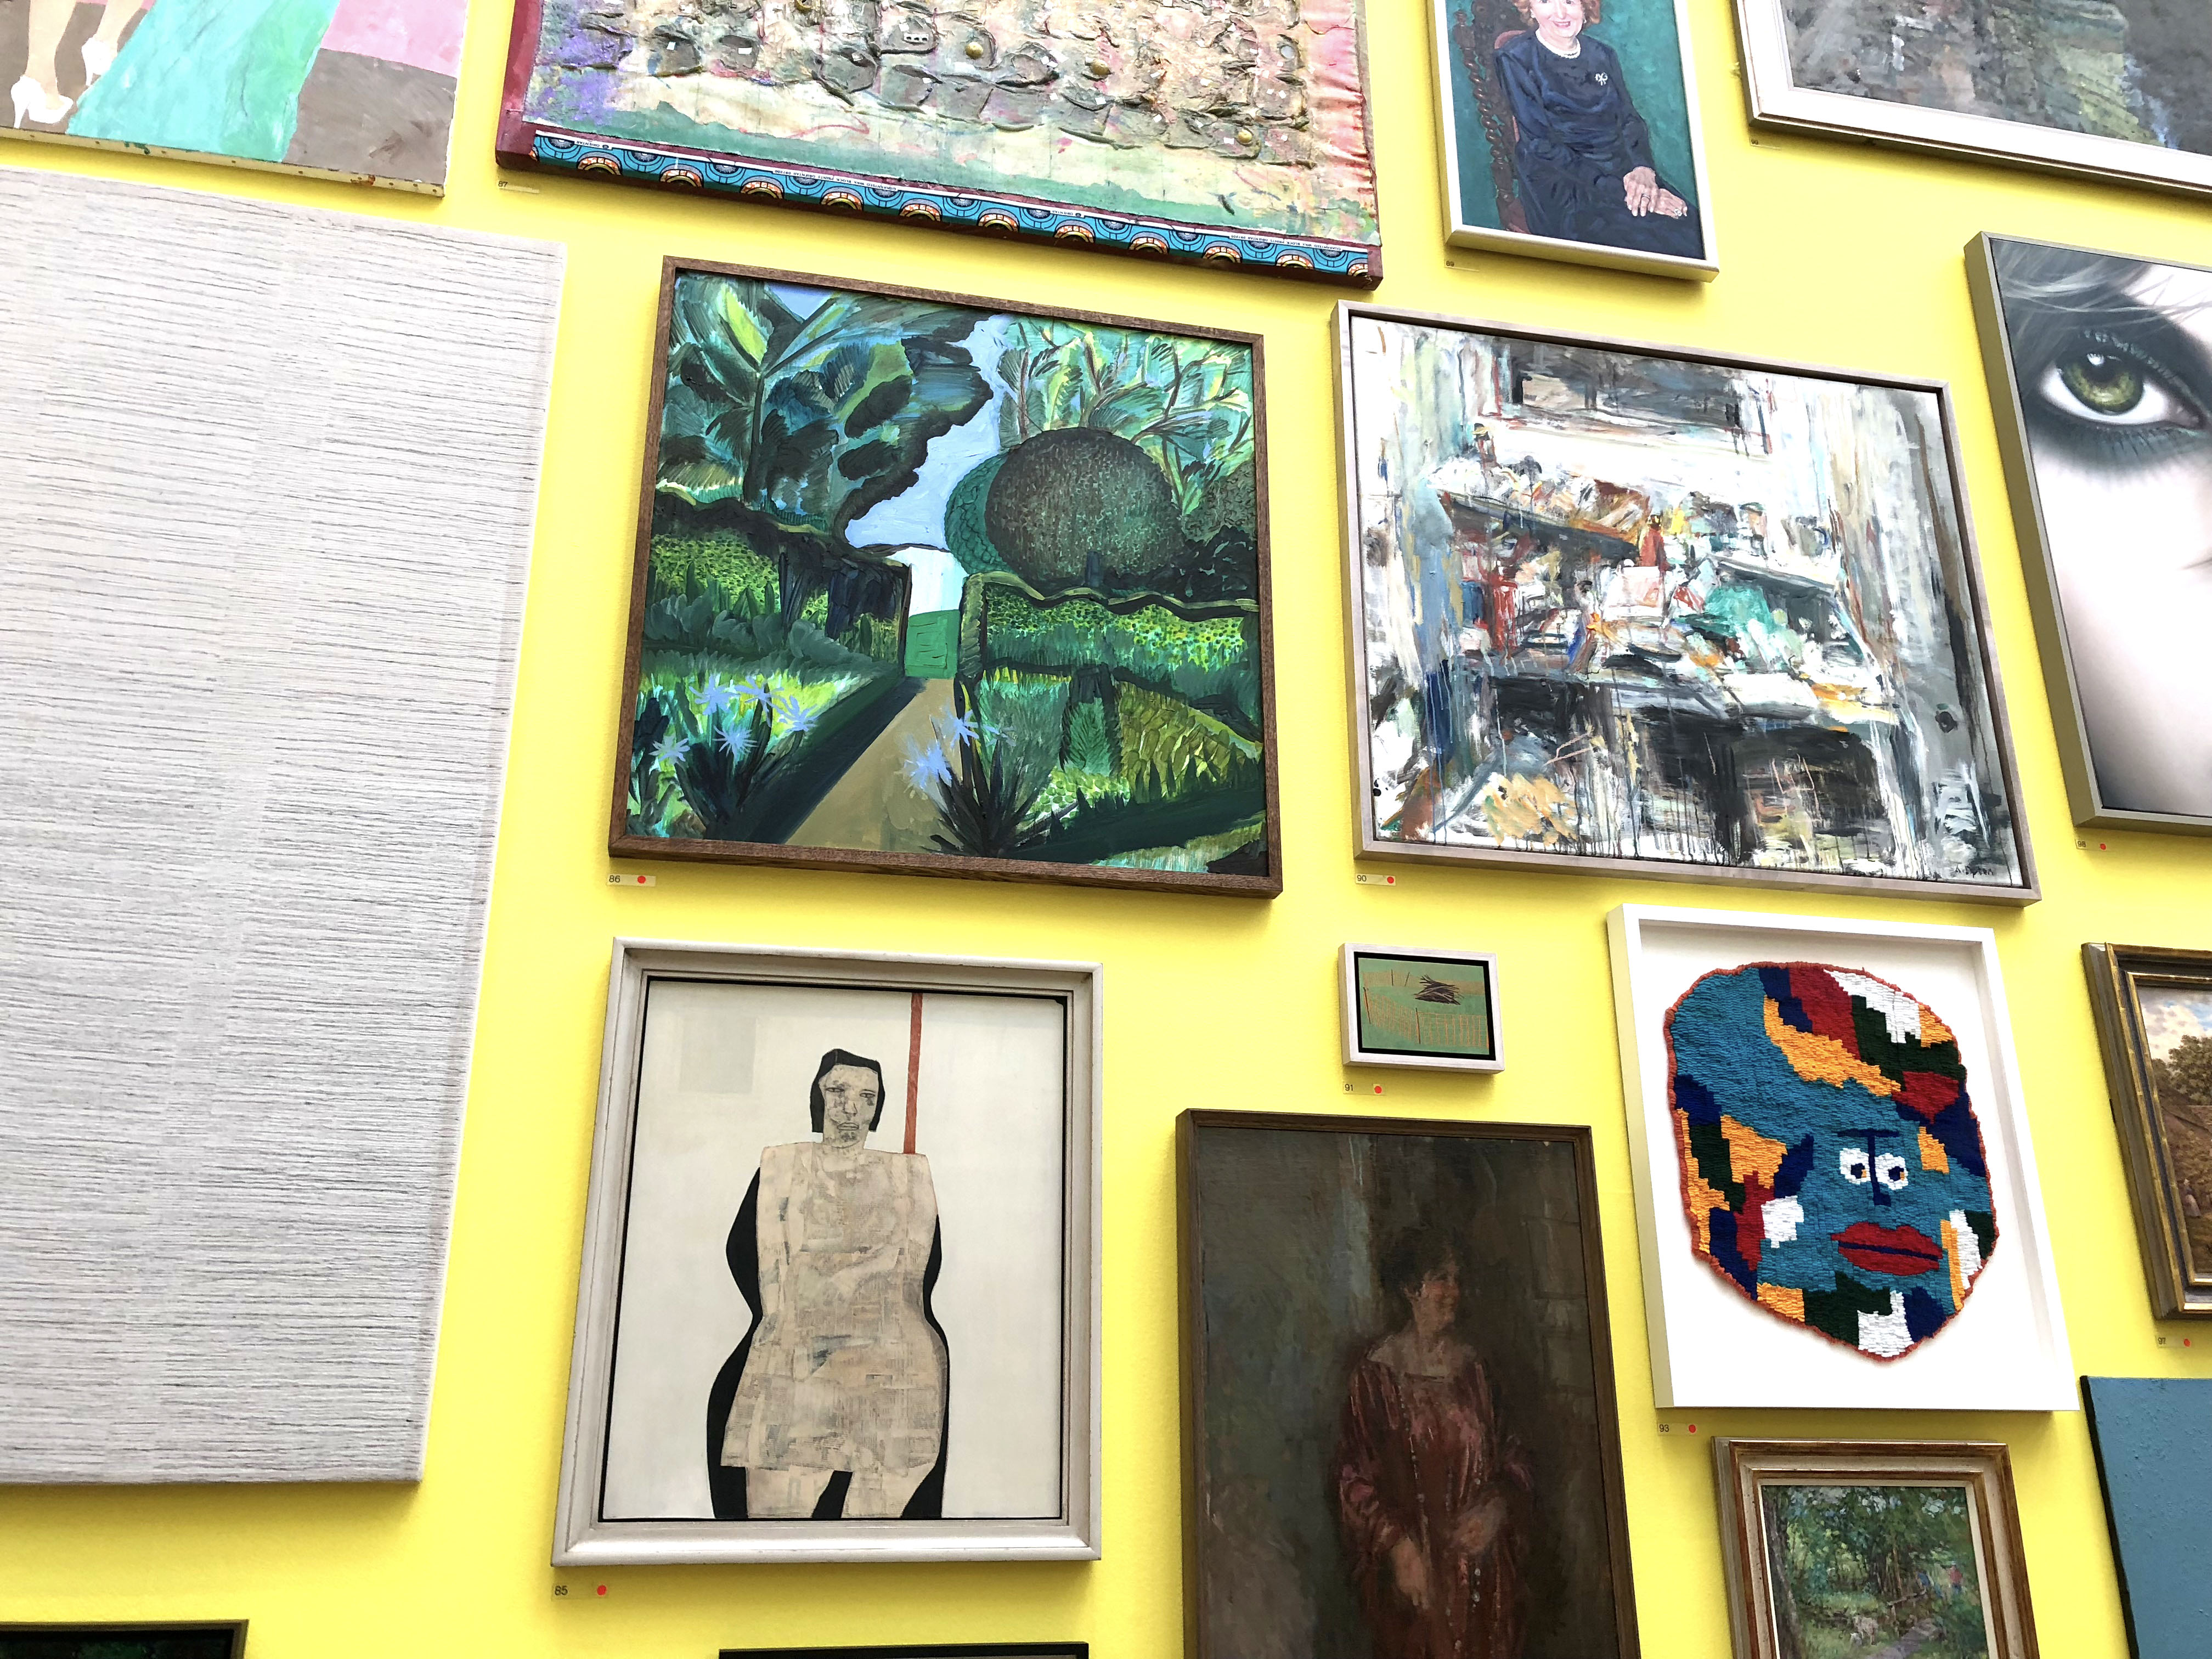 Royal Academy Summer Exhibition 2018. Lunchtime by Sophie O'Leary